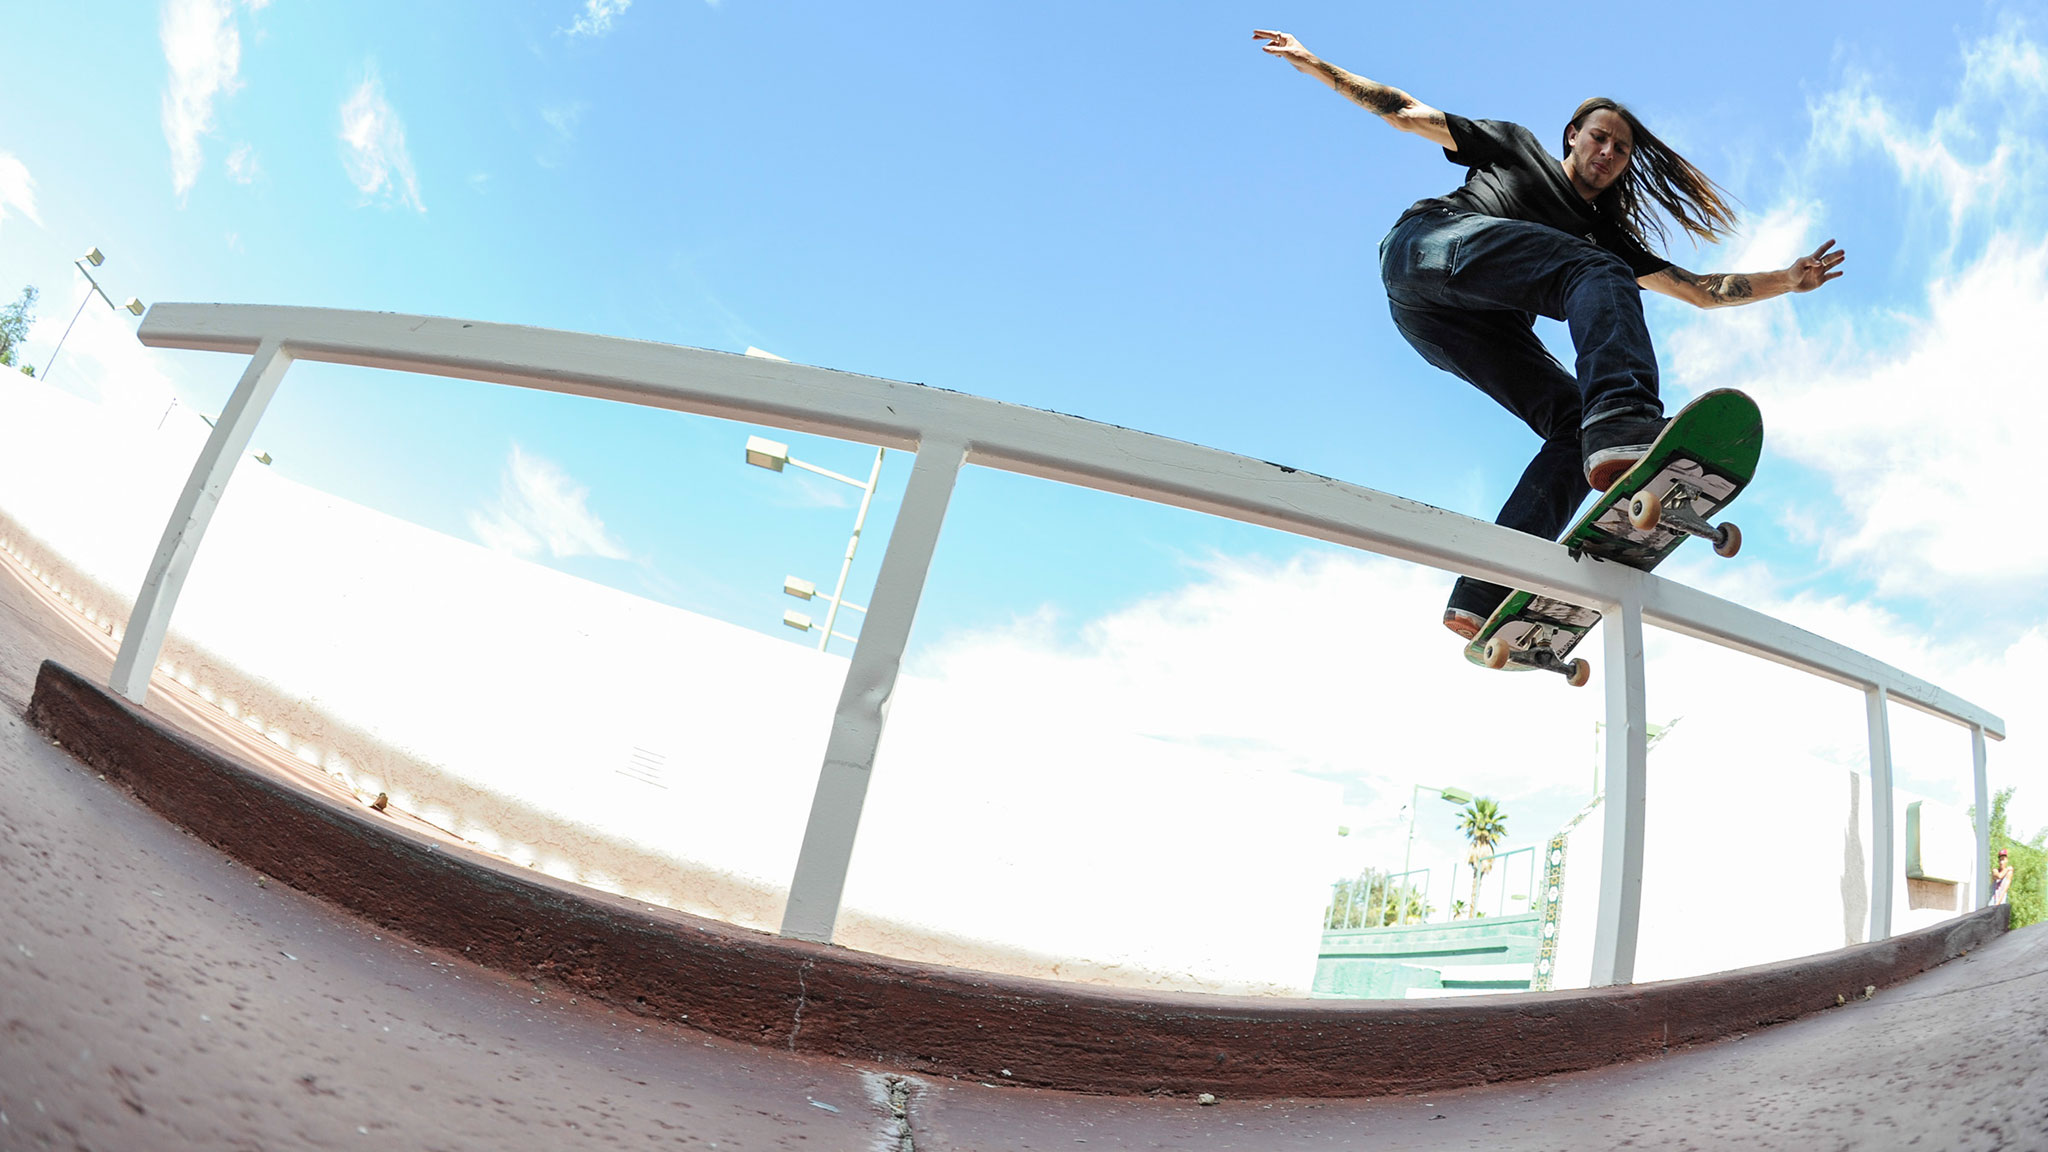 Riley Hawk, Skateboard Street